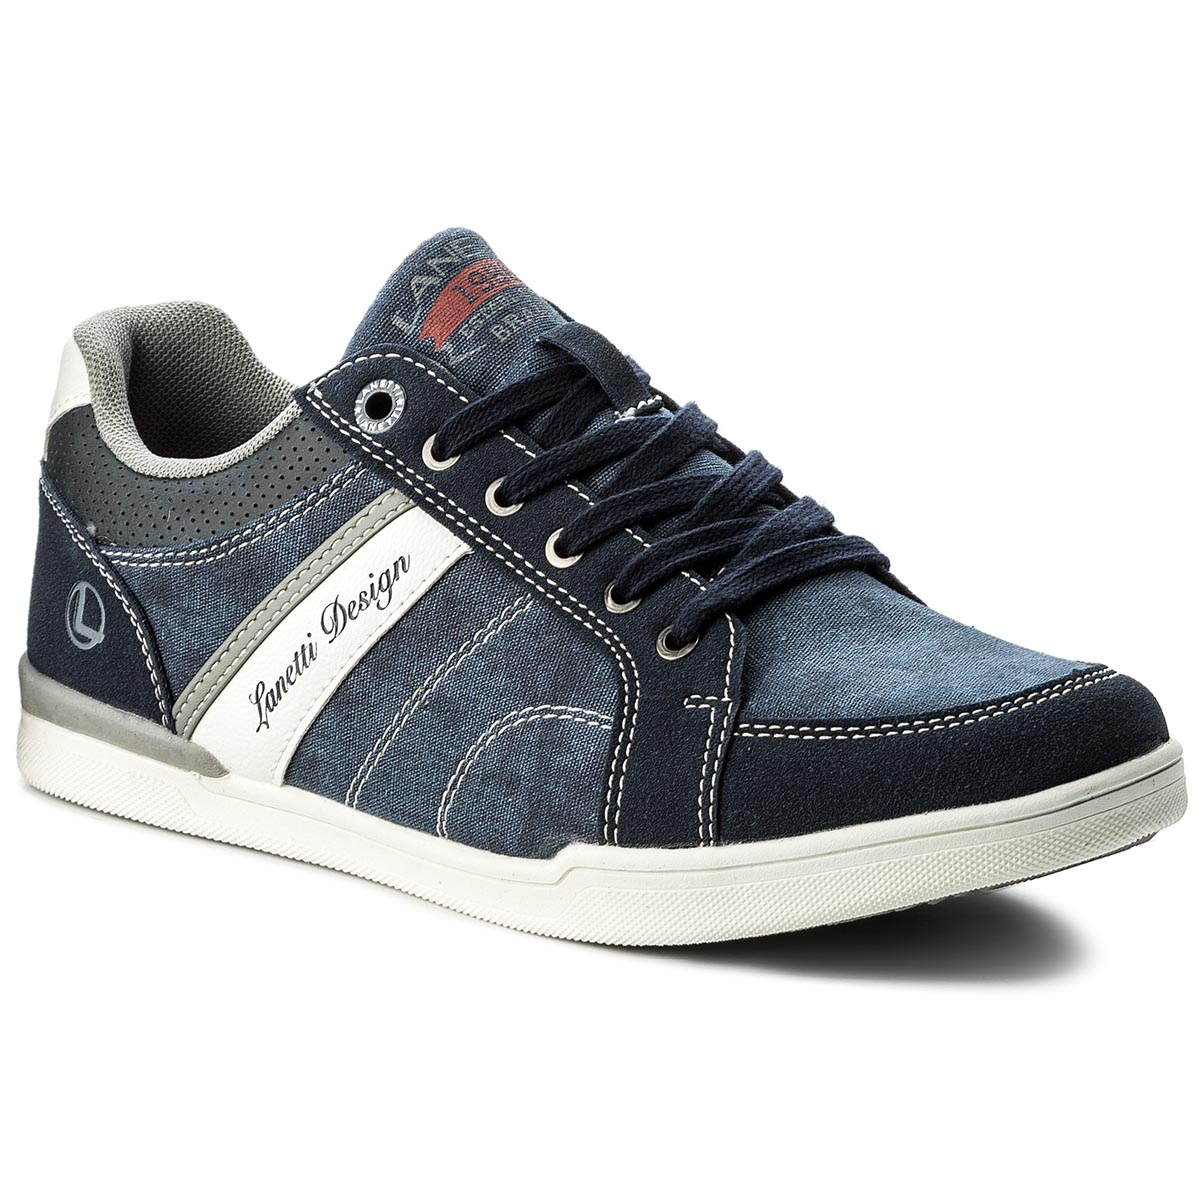 Sneakers LANETTI - MP07-17077-03 Jeansowy